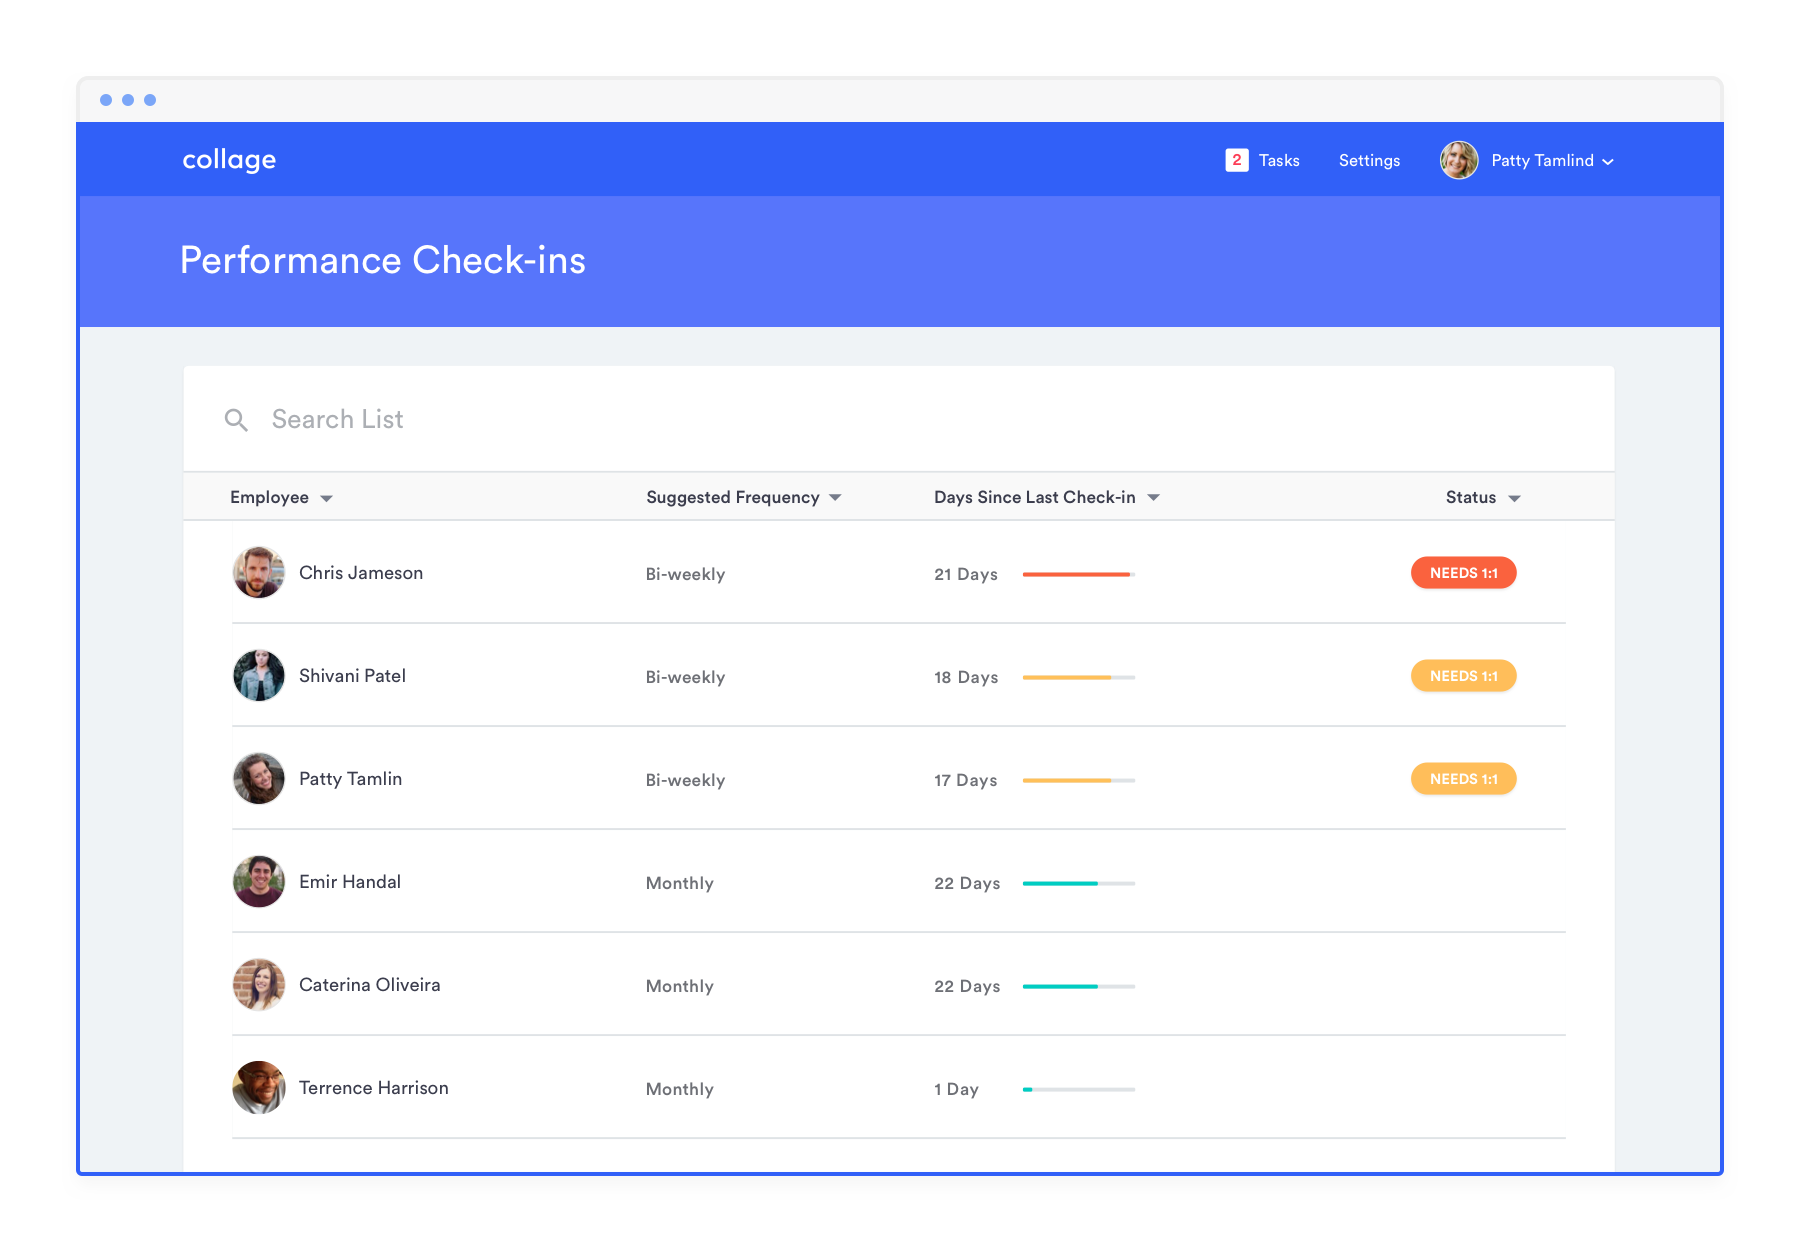 Performance check-ins